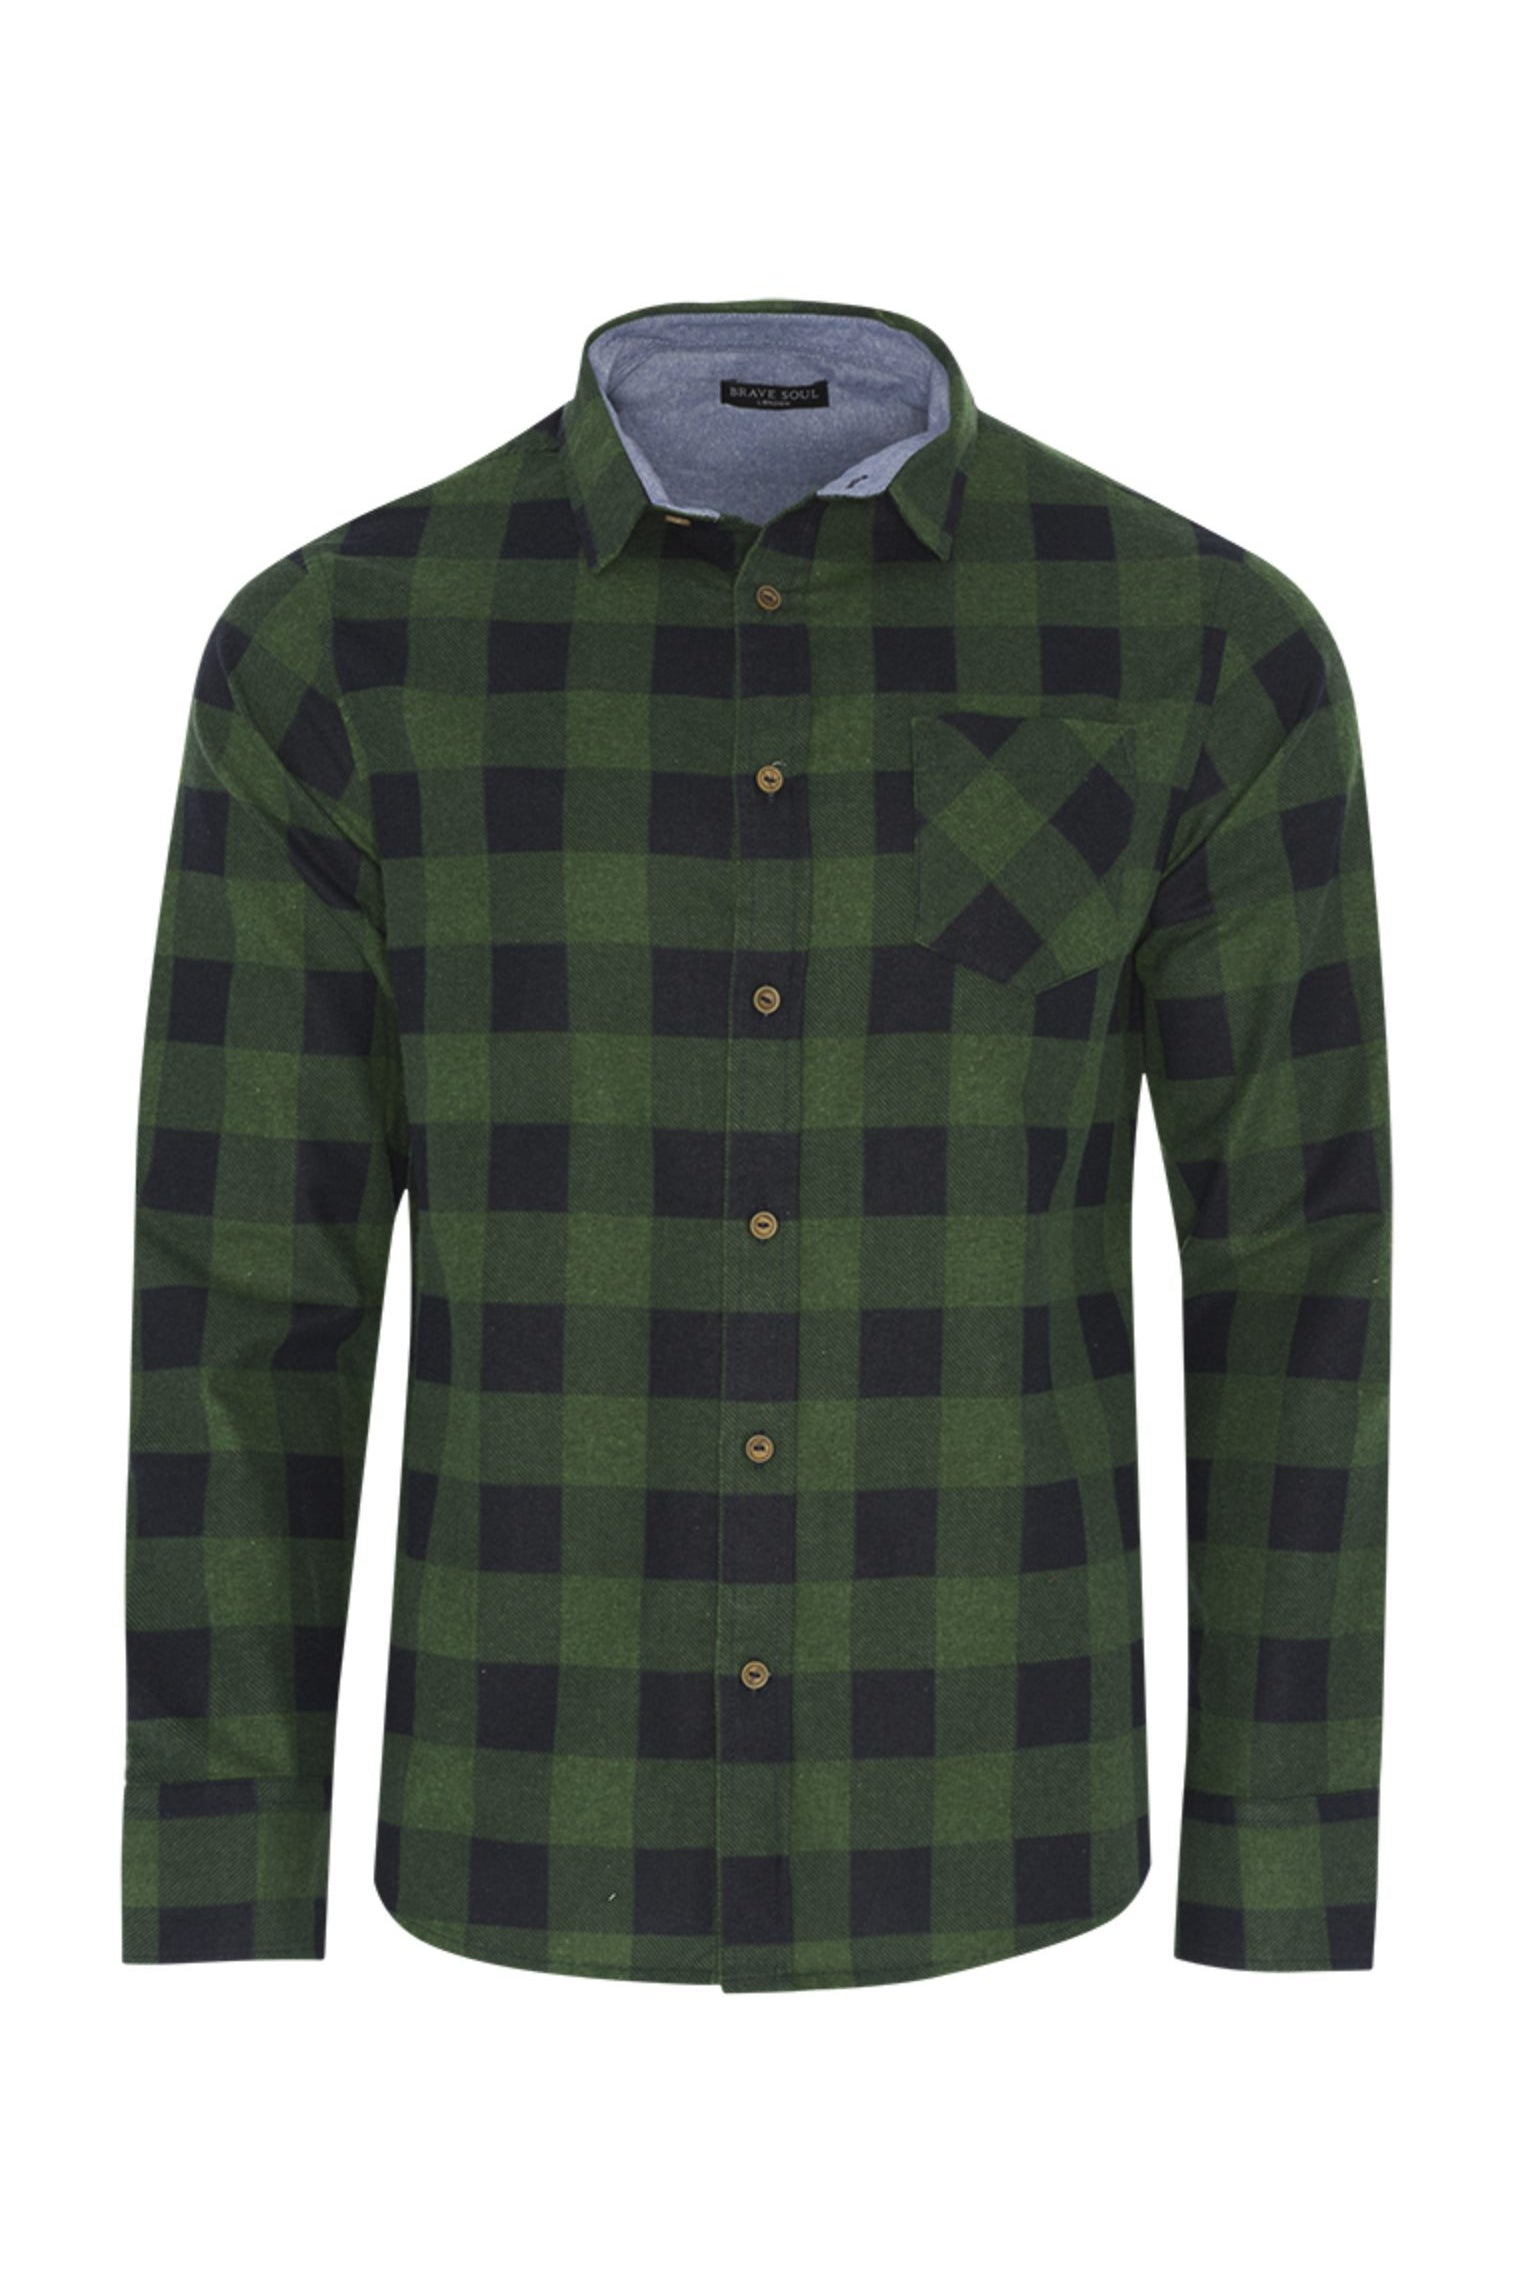 Shirts - Check Shirt Green